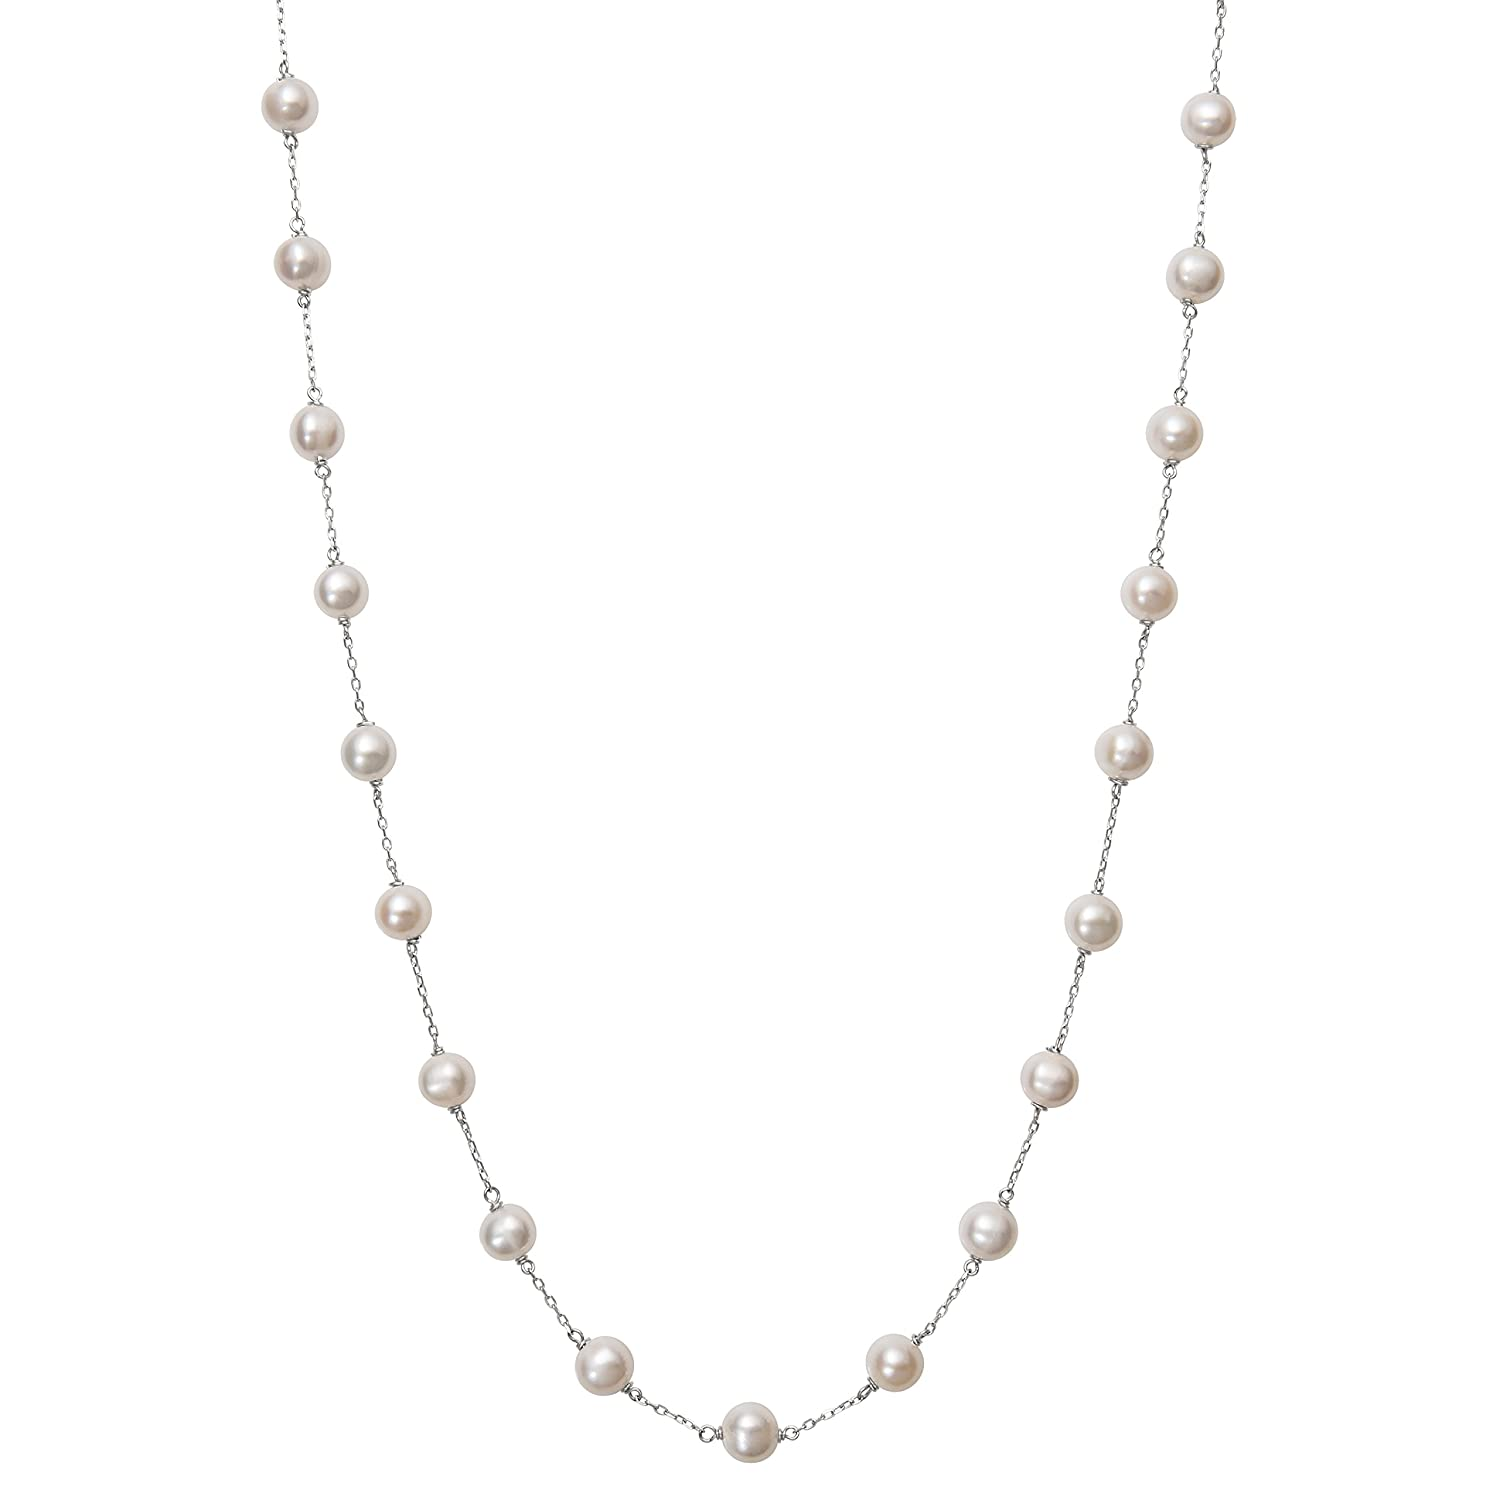 10K Gold 6.0-6.5mm White Cultured Freshwater Pearl Station Tin Cup Chain Necklace,18